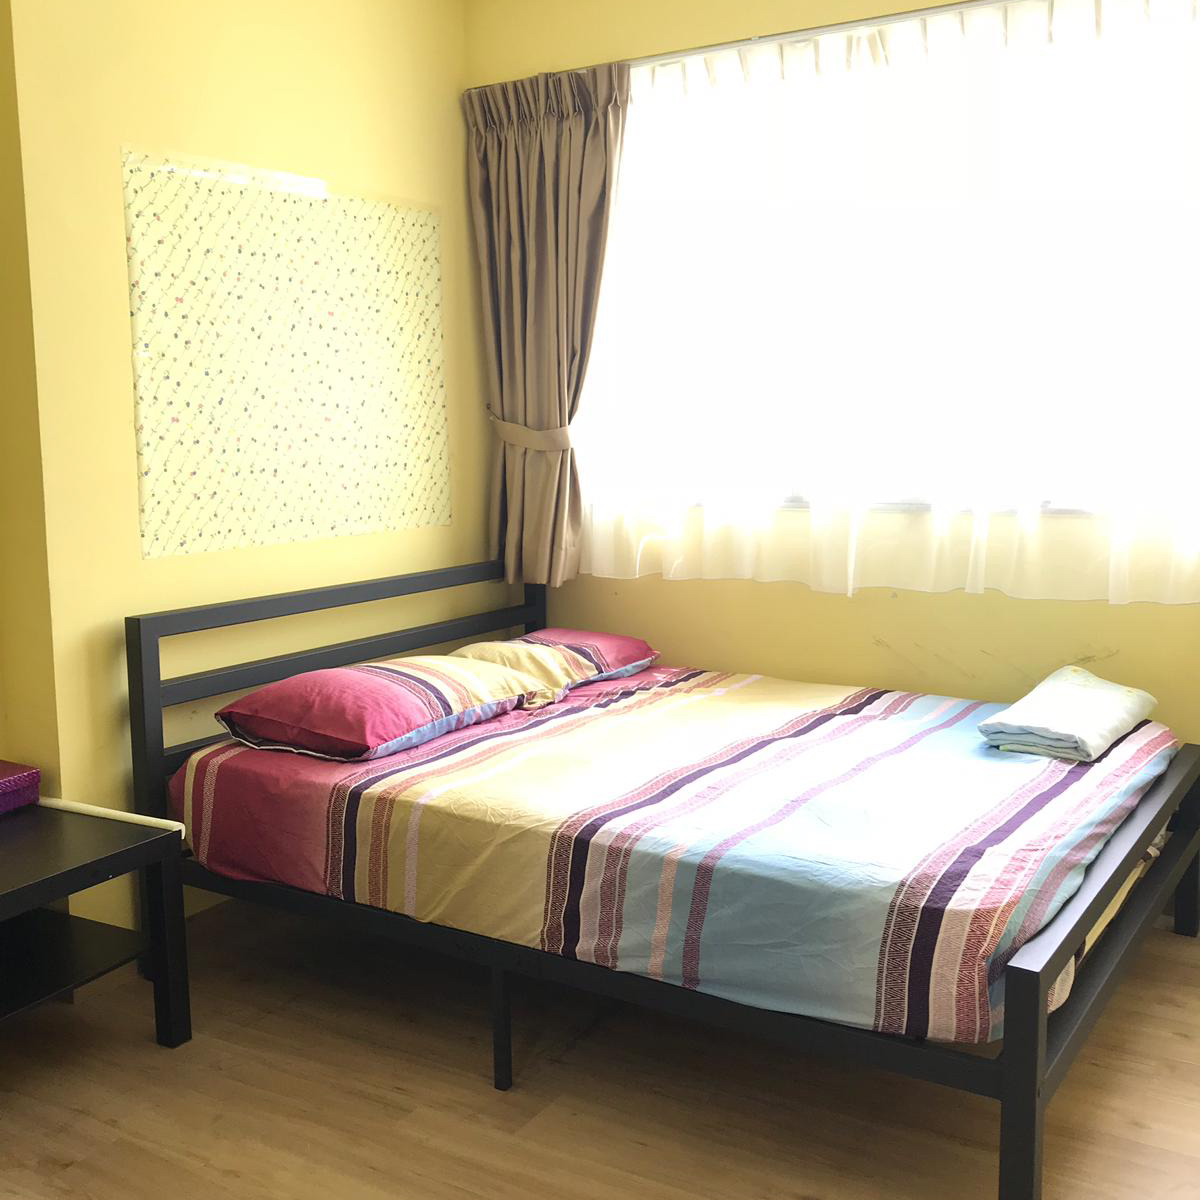 Looking for a room in khatib?